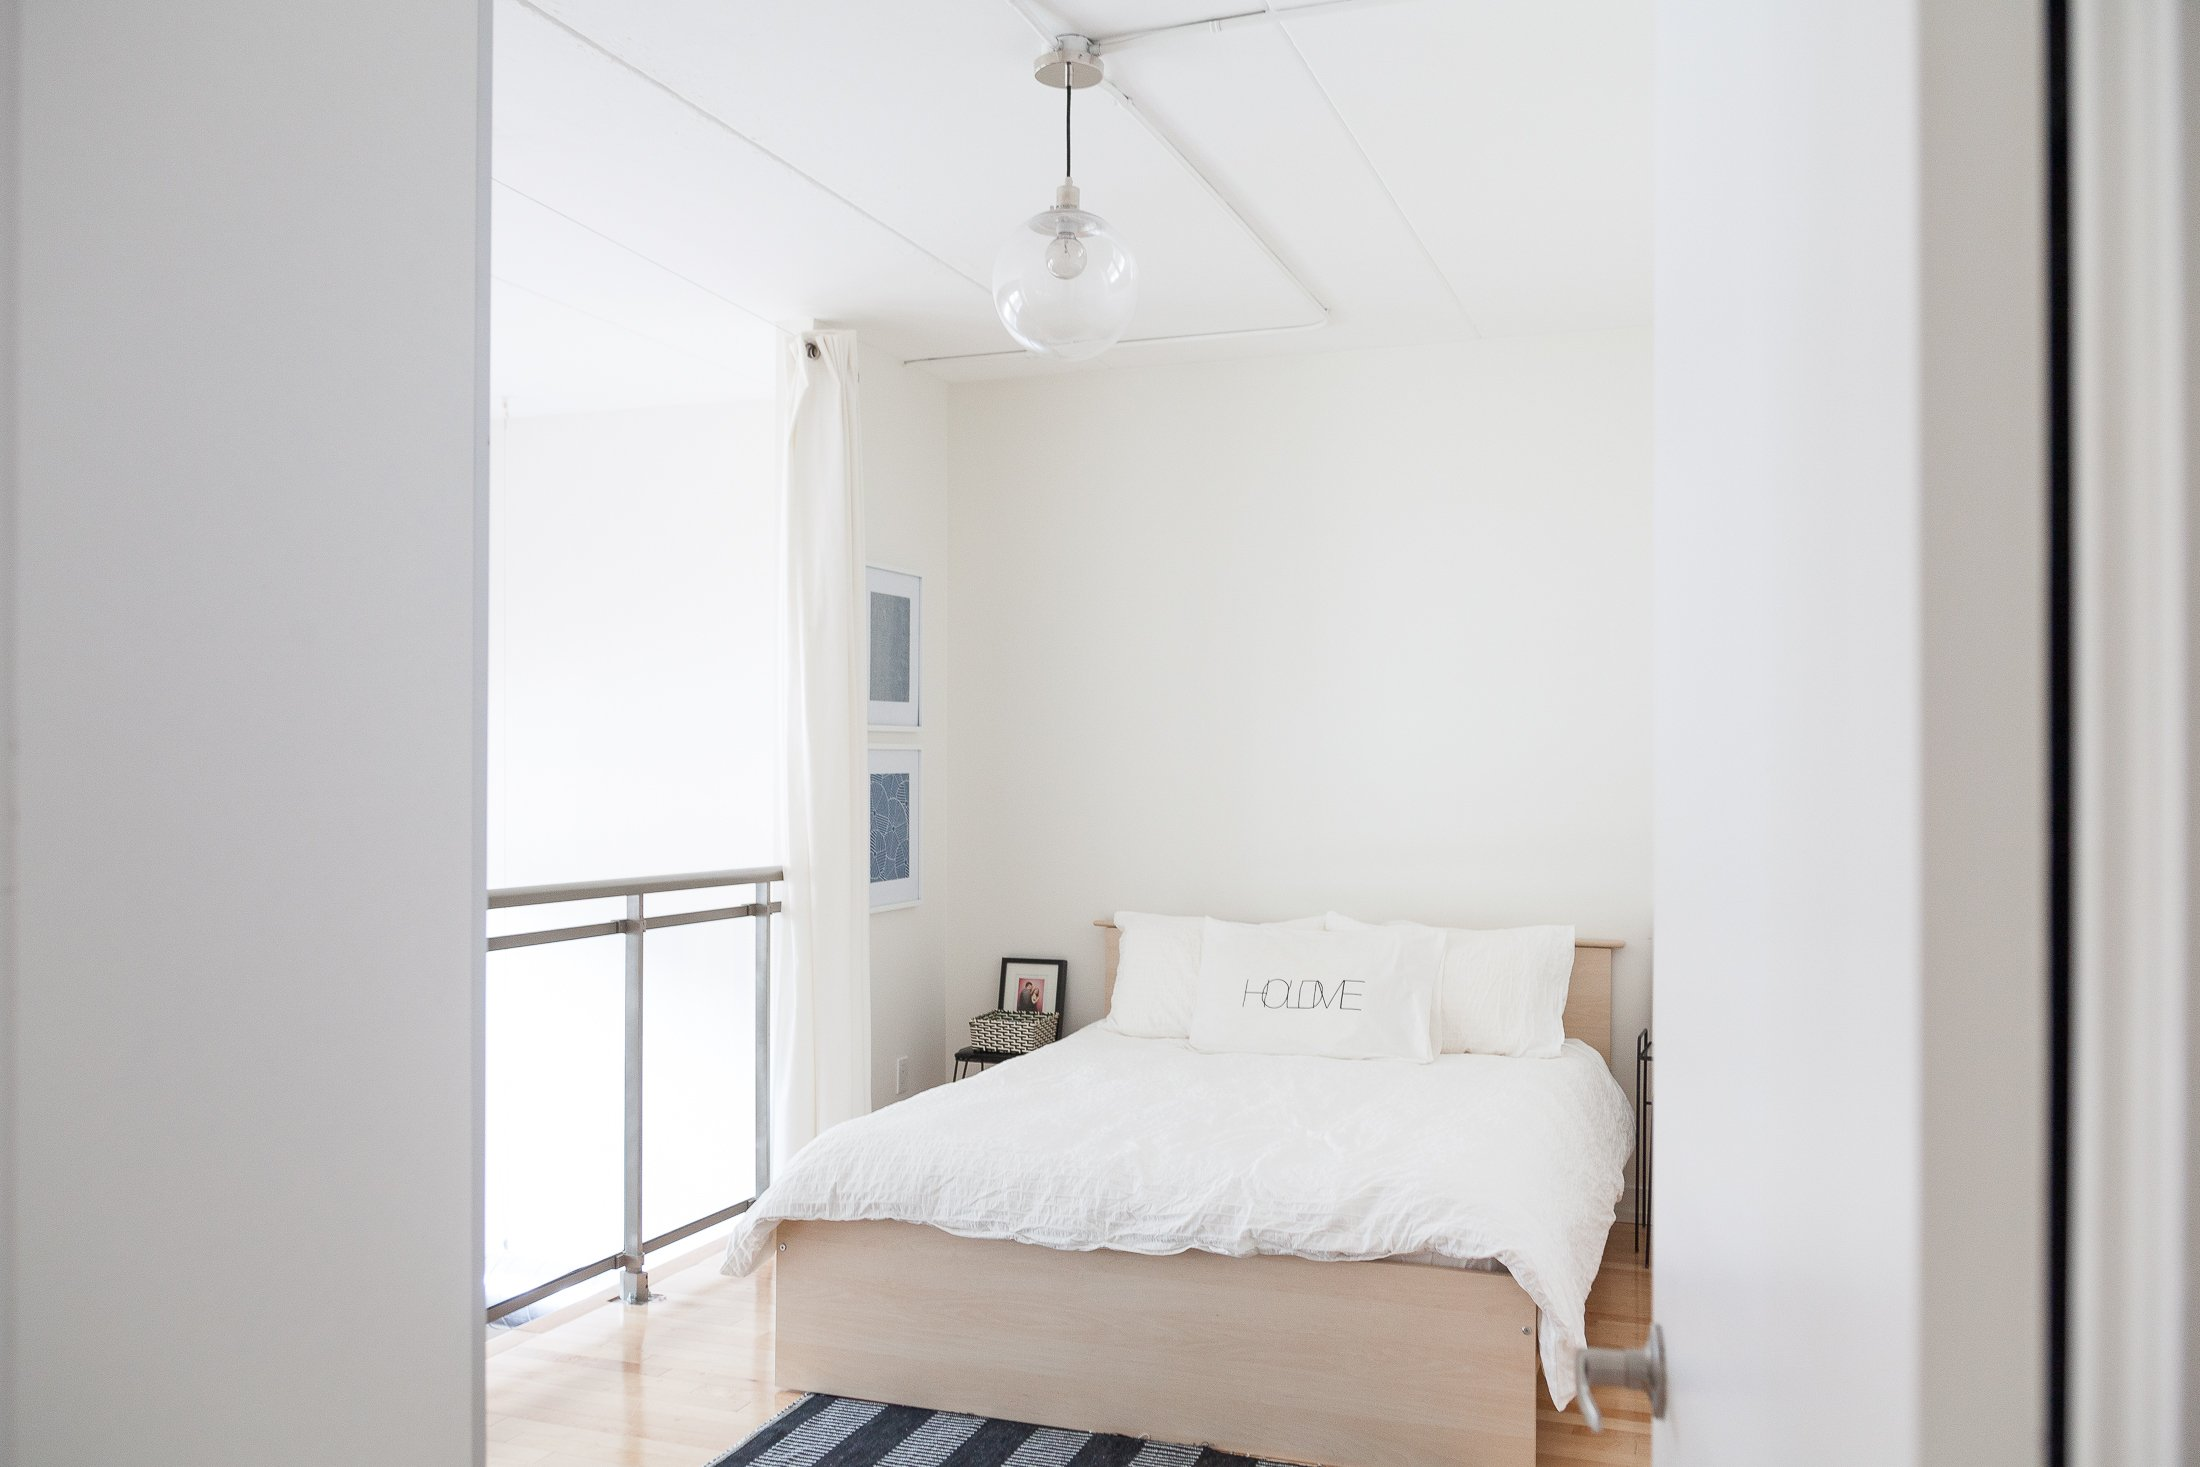 Soundproof Your Rental Bedroom in Under 10 Minutes ...